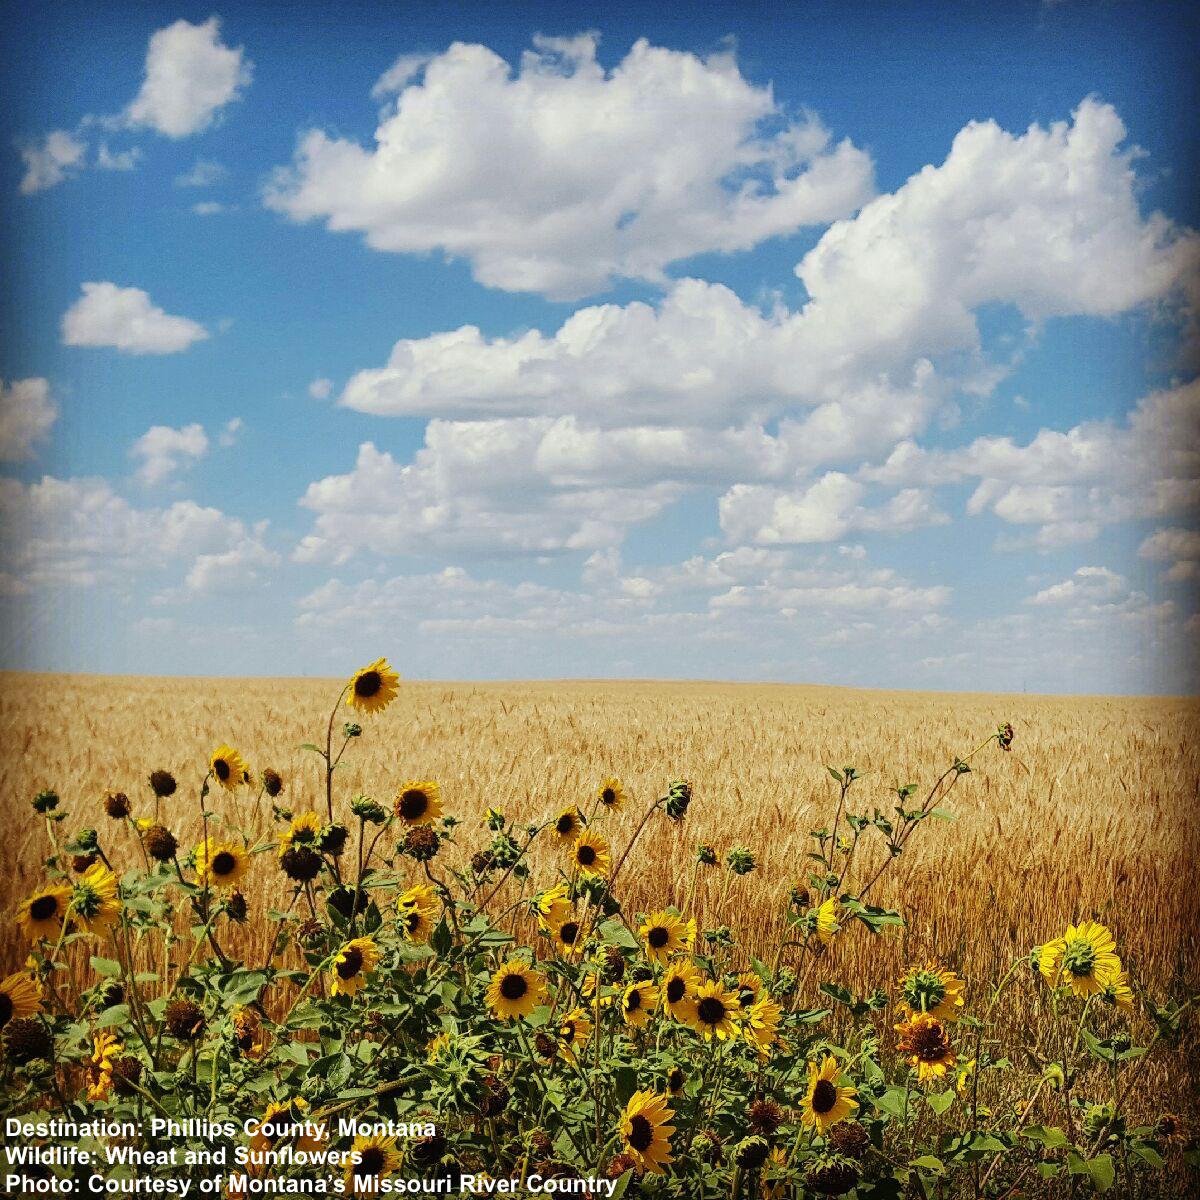 FIELD OF WHEAT AND SUNFLOWERS, NEAR MALTA, PHILLIPS COUNTY, MONTANA. IMAGE: COURTESY OF MONTANA'S MISSOURI RIVER COUNTRY AND THE PHILLCO ECONOMIC GROWTH COUNCIL.